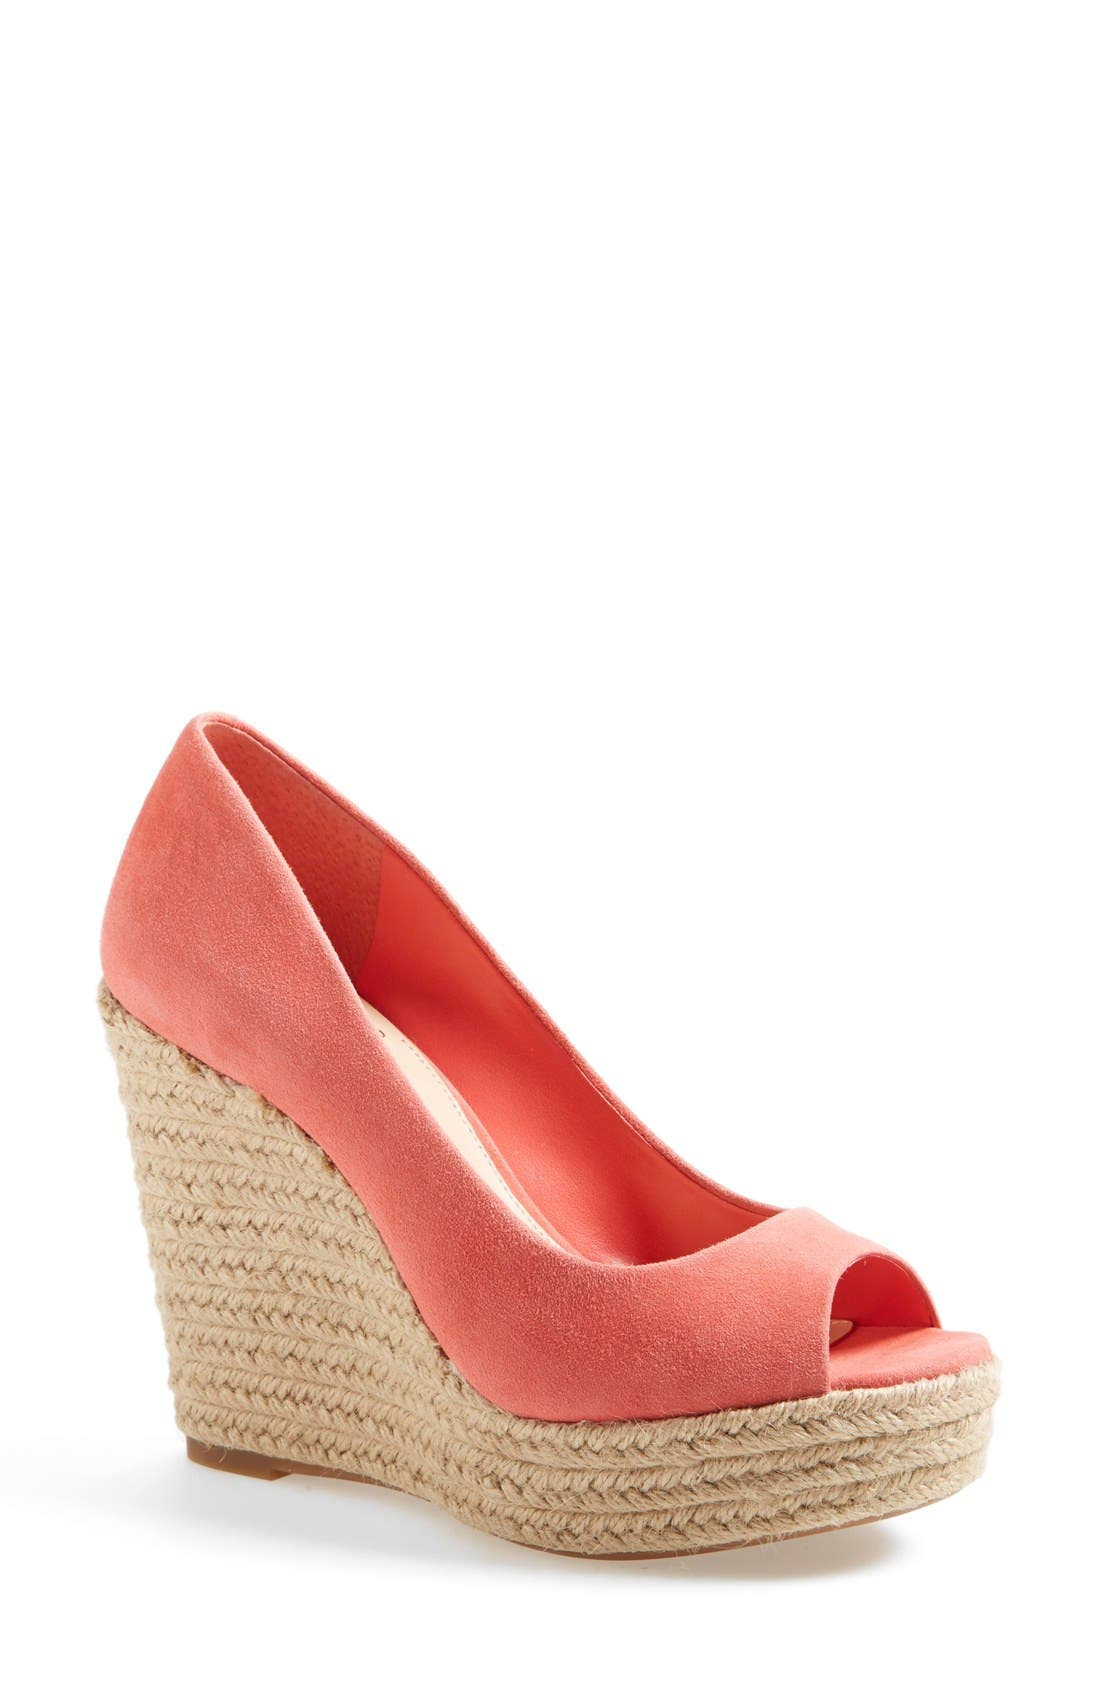 Alternate Image 1 Selected - Vince Camuto 'Totsi' Peep Toe Espadrille Wedge (Women)